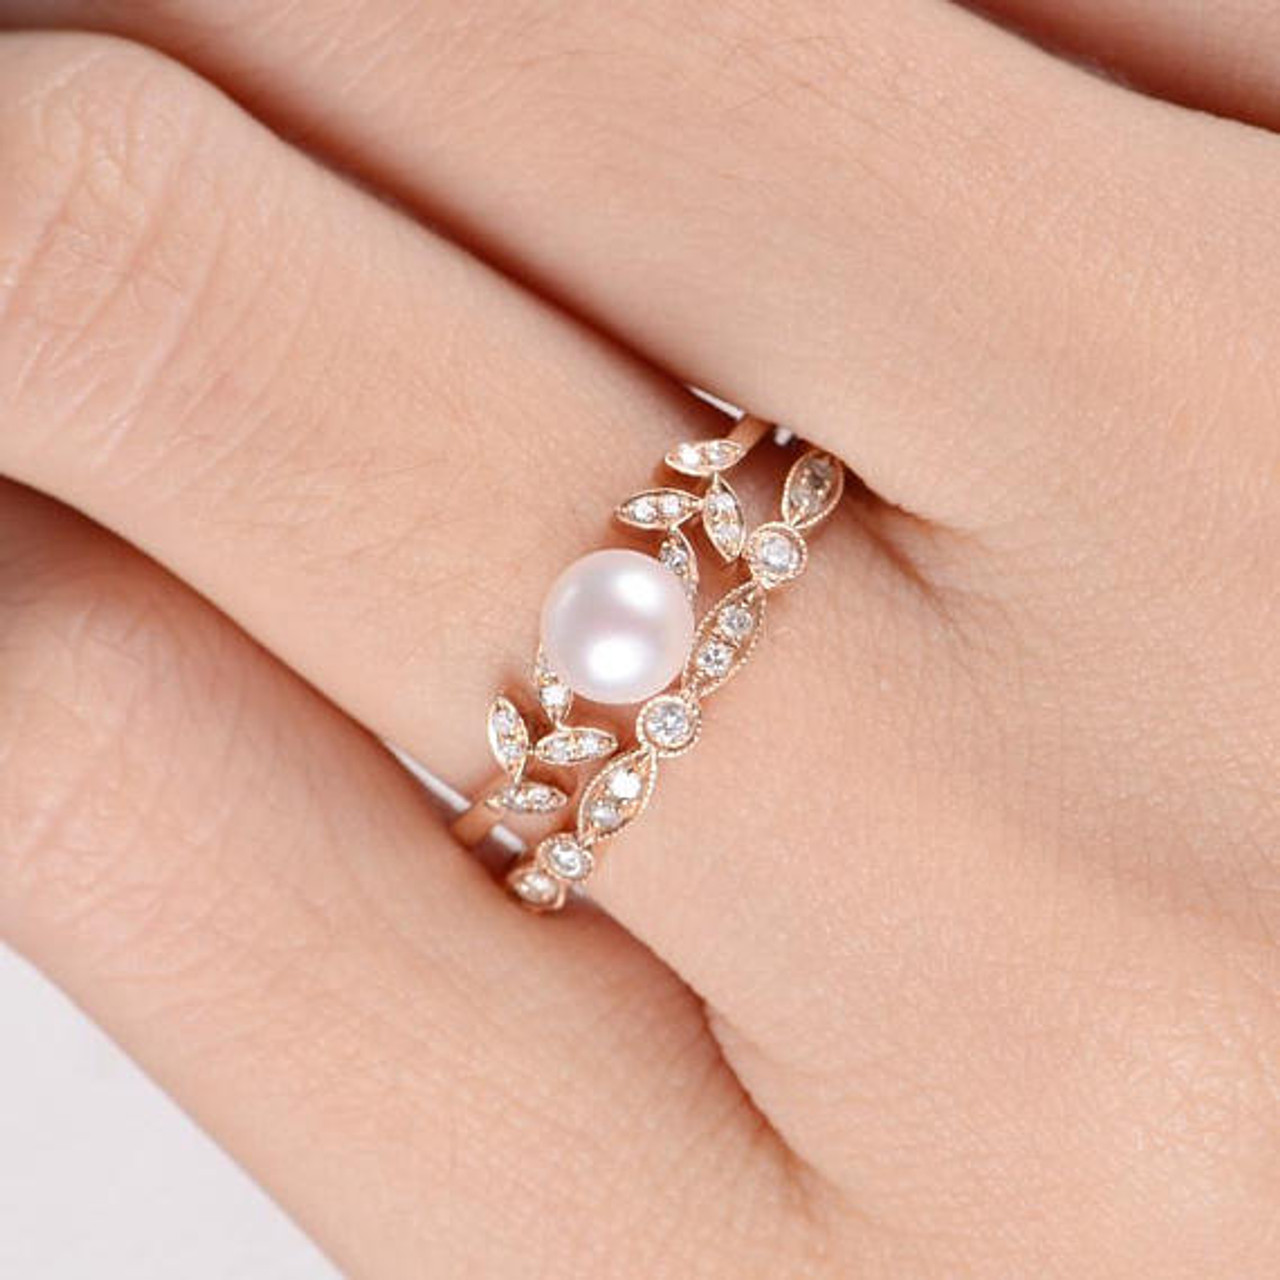 diamond vintage estate rings jewelry view next t natural pearl product jewellery ring engagement